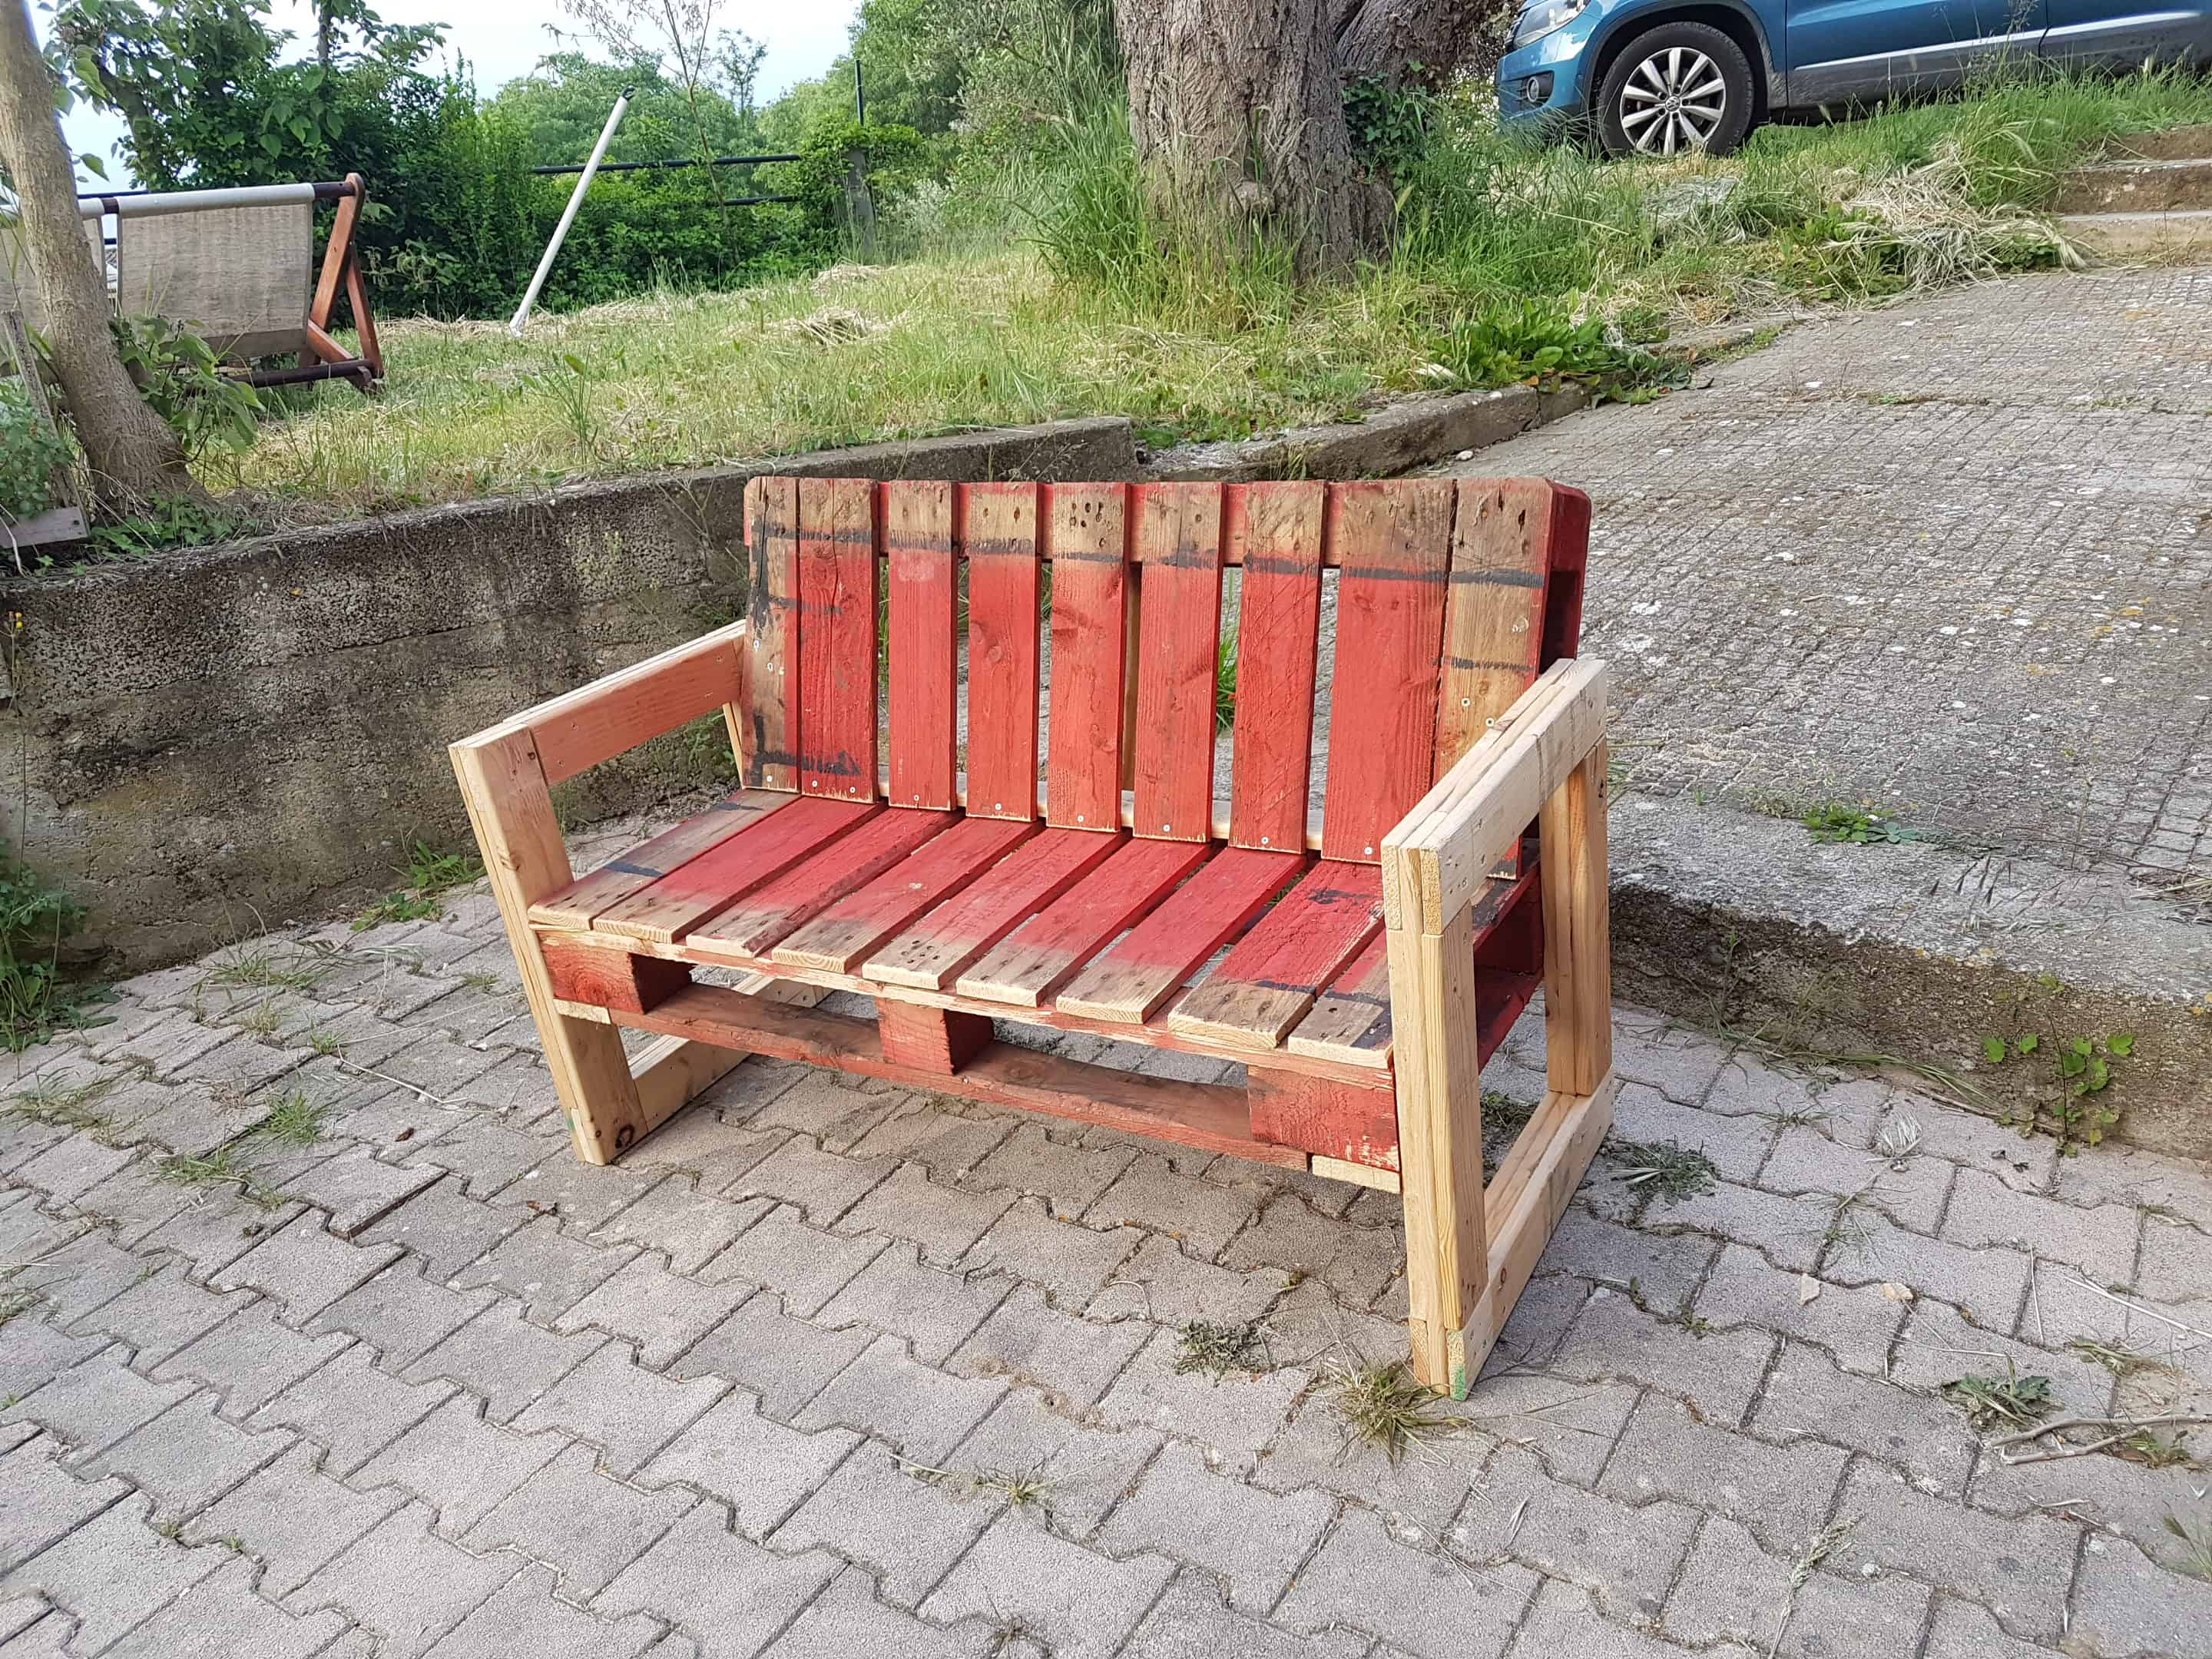 Astounding Red Pallet Garden Bench For Outdoor Relaxing 1001 Pallets Pdpeps Interior Chair Design Pdpepsorg